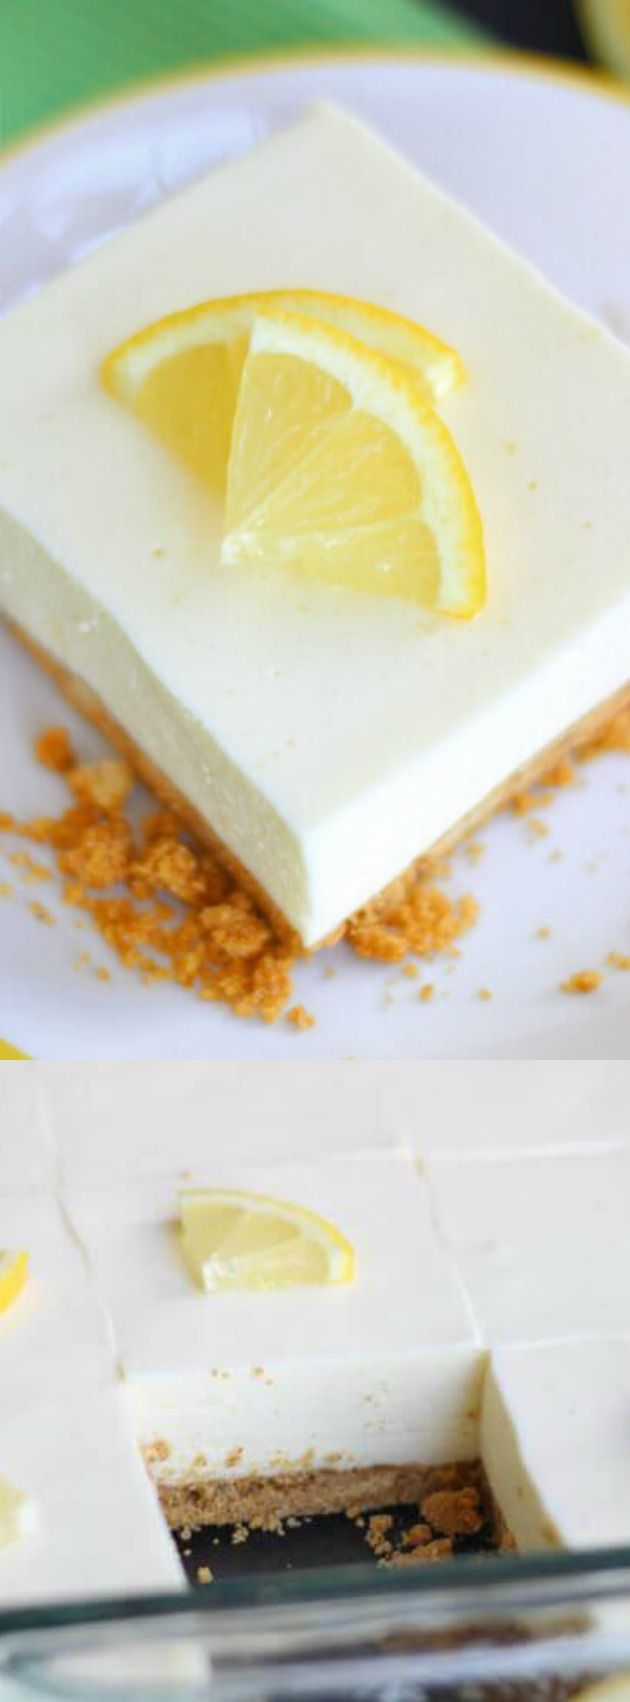 This No-Bake Lemon Jello Cheesecake recipe from Leesh & Lu's Recipe Box is light, lemony and has the perfect buttery, sugary graham cracker crust!